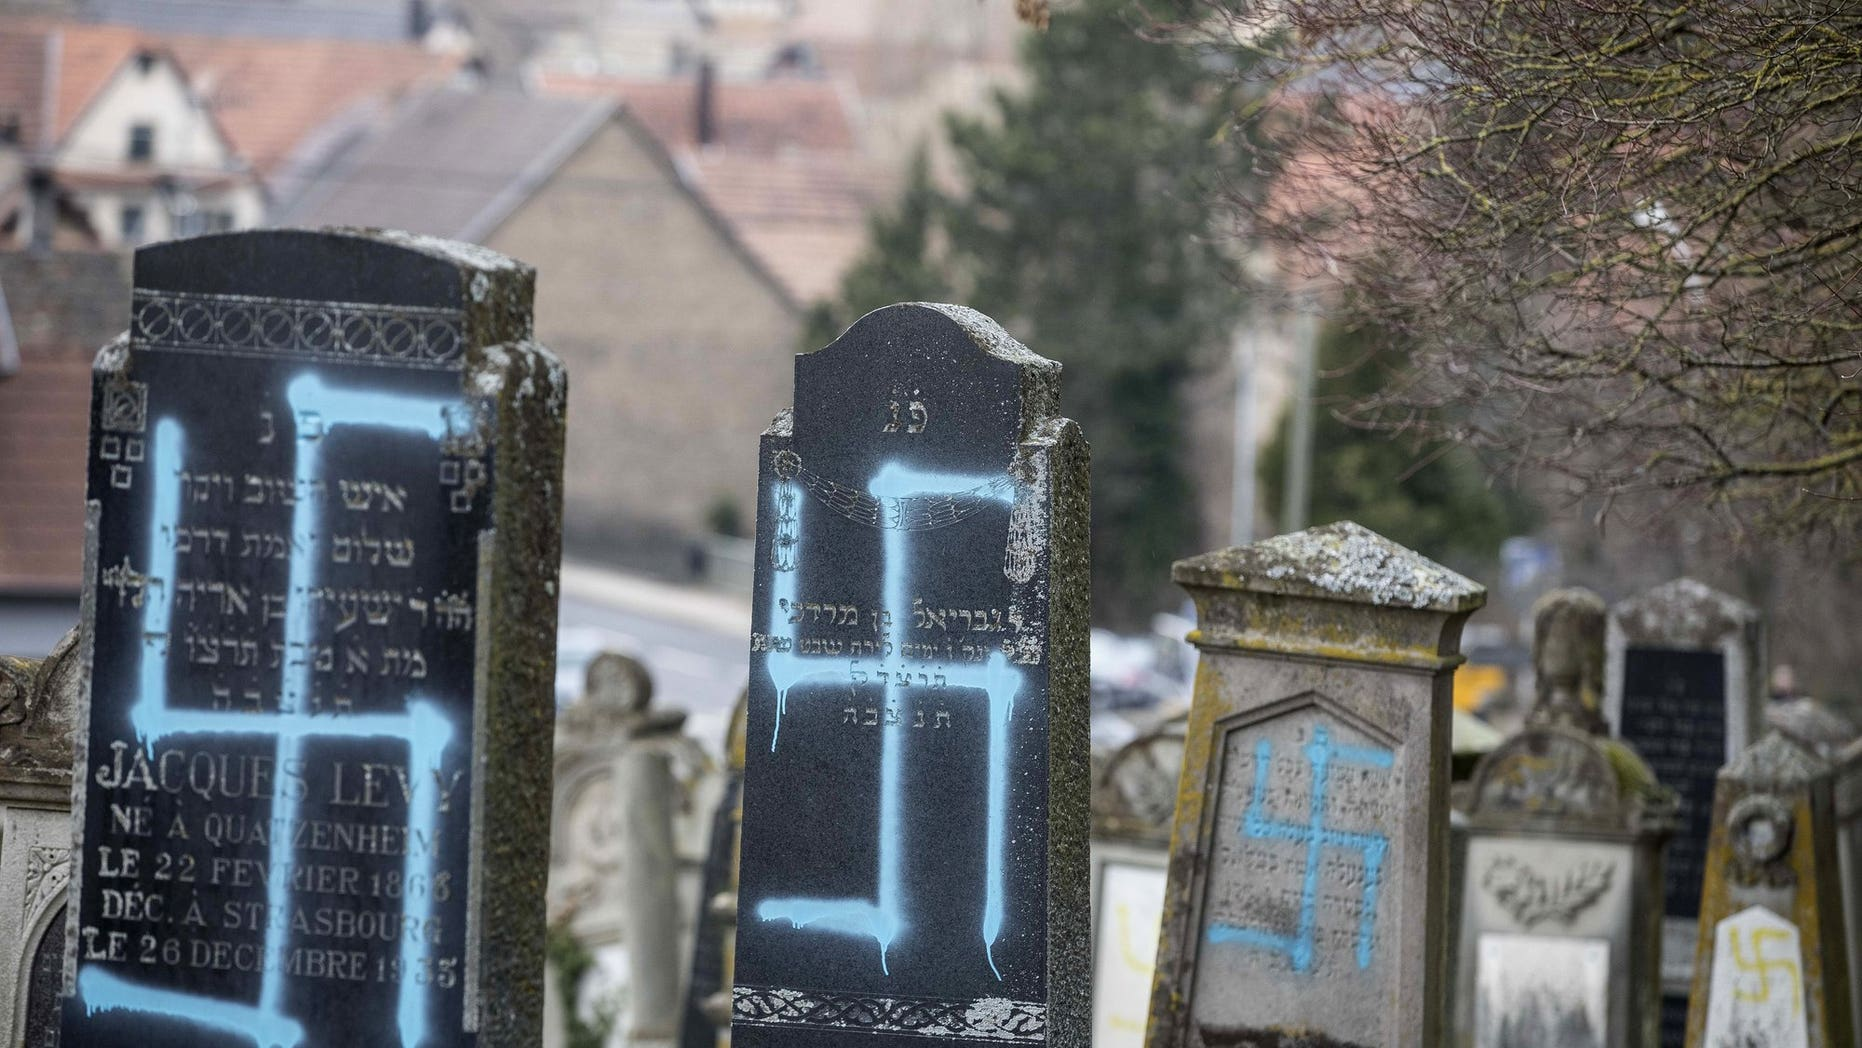 Vandalized tombs with tagged swastikas are pictured in the Jewish cemetery of Quatzenheim, eastern France, Tuesday, Feb.19, 2019. Marches and gatherings against anti-Semitism are taking place across France following a series of anti-Semitic acts that shocked the country.